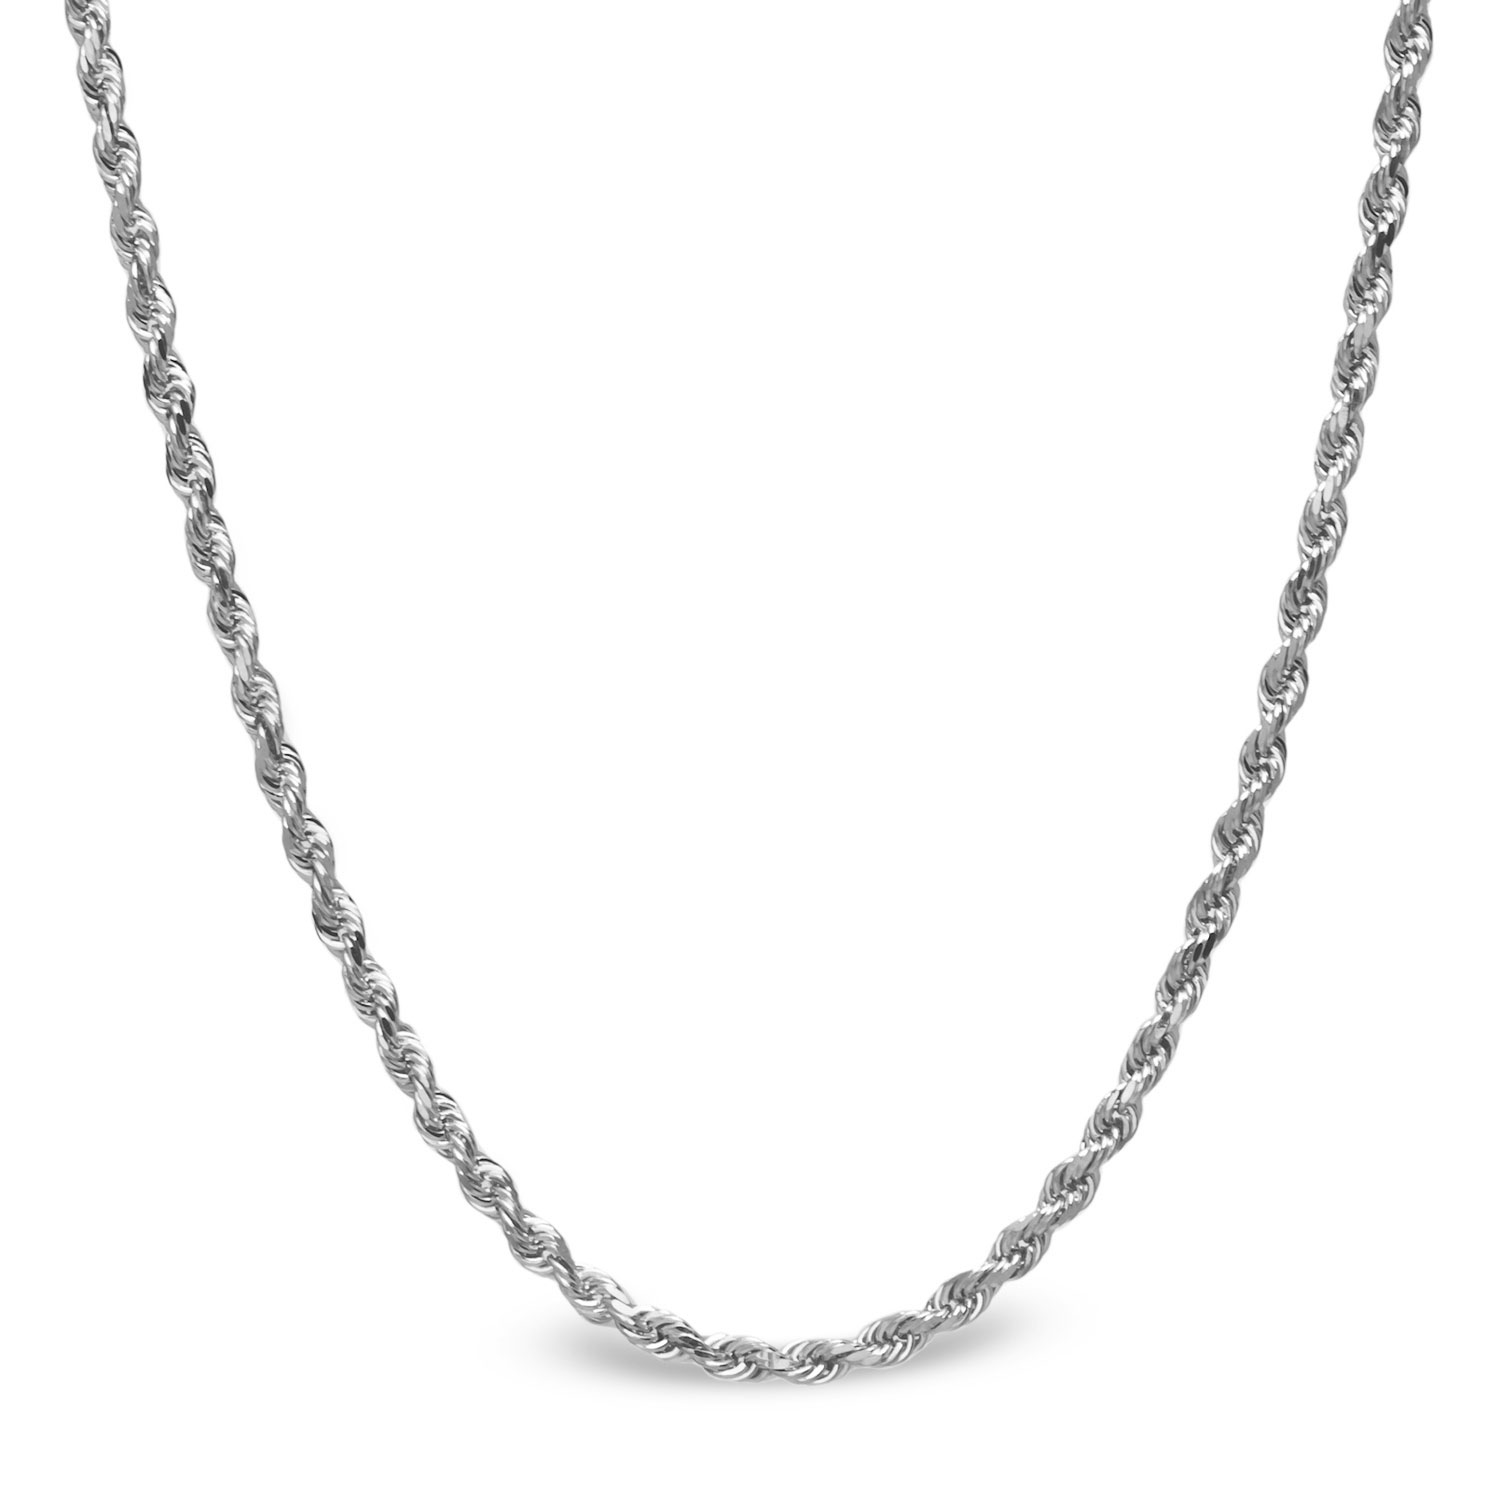 Diamond Cut Rope 14k White Gold Necklace - 30 in.